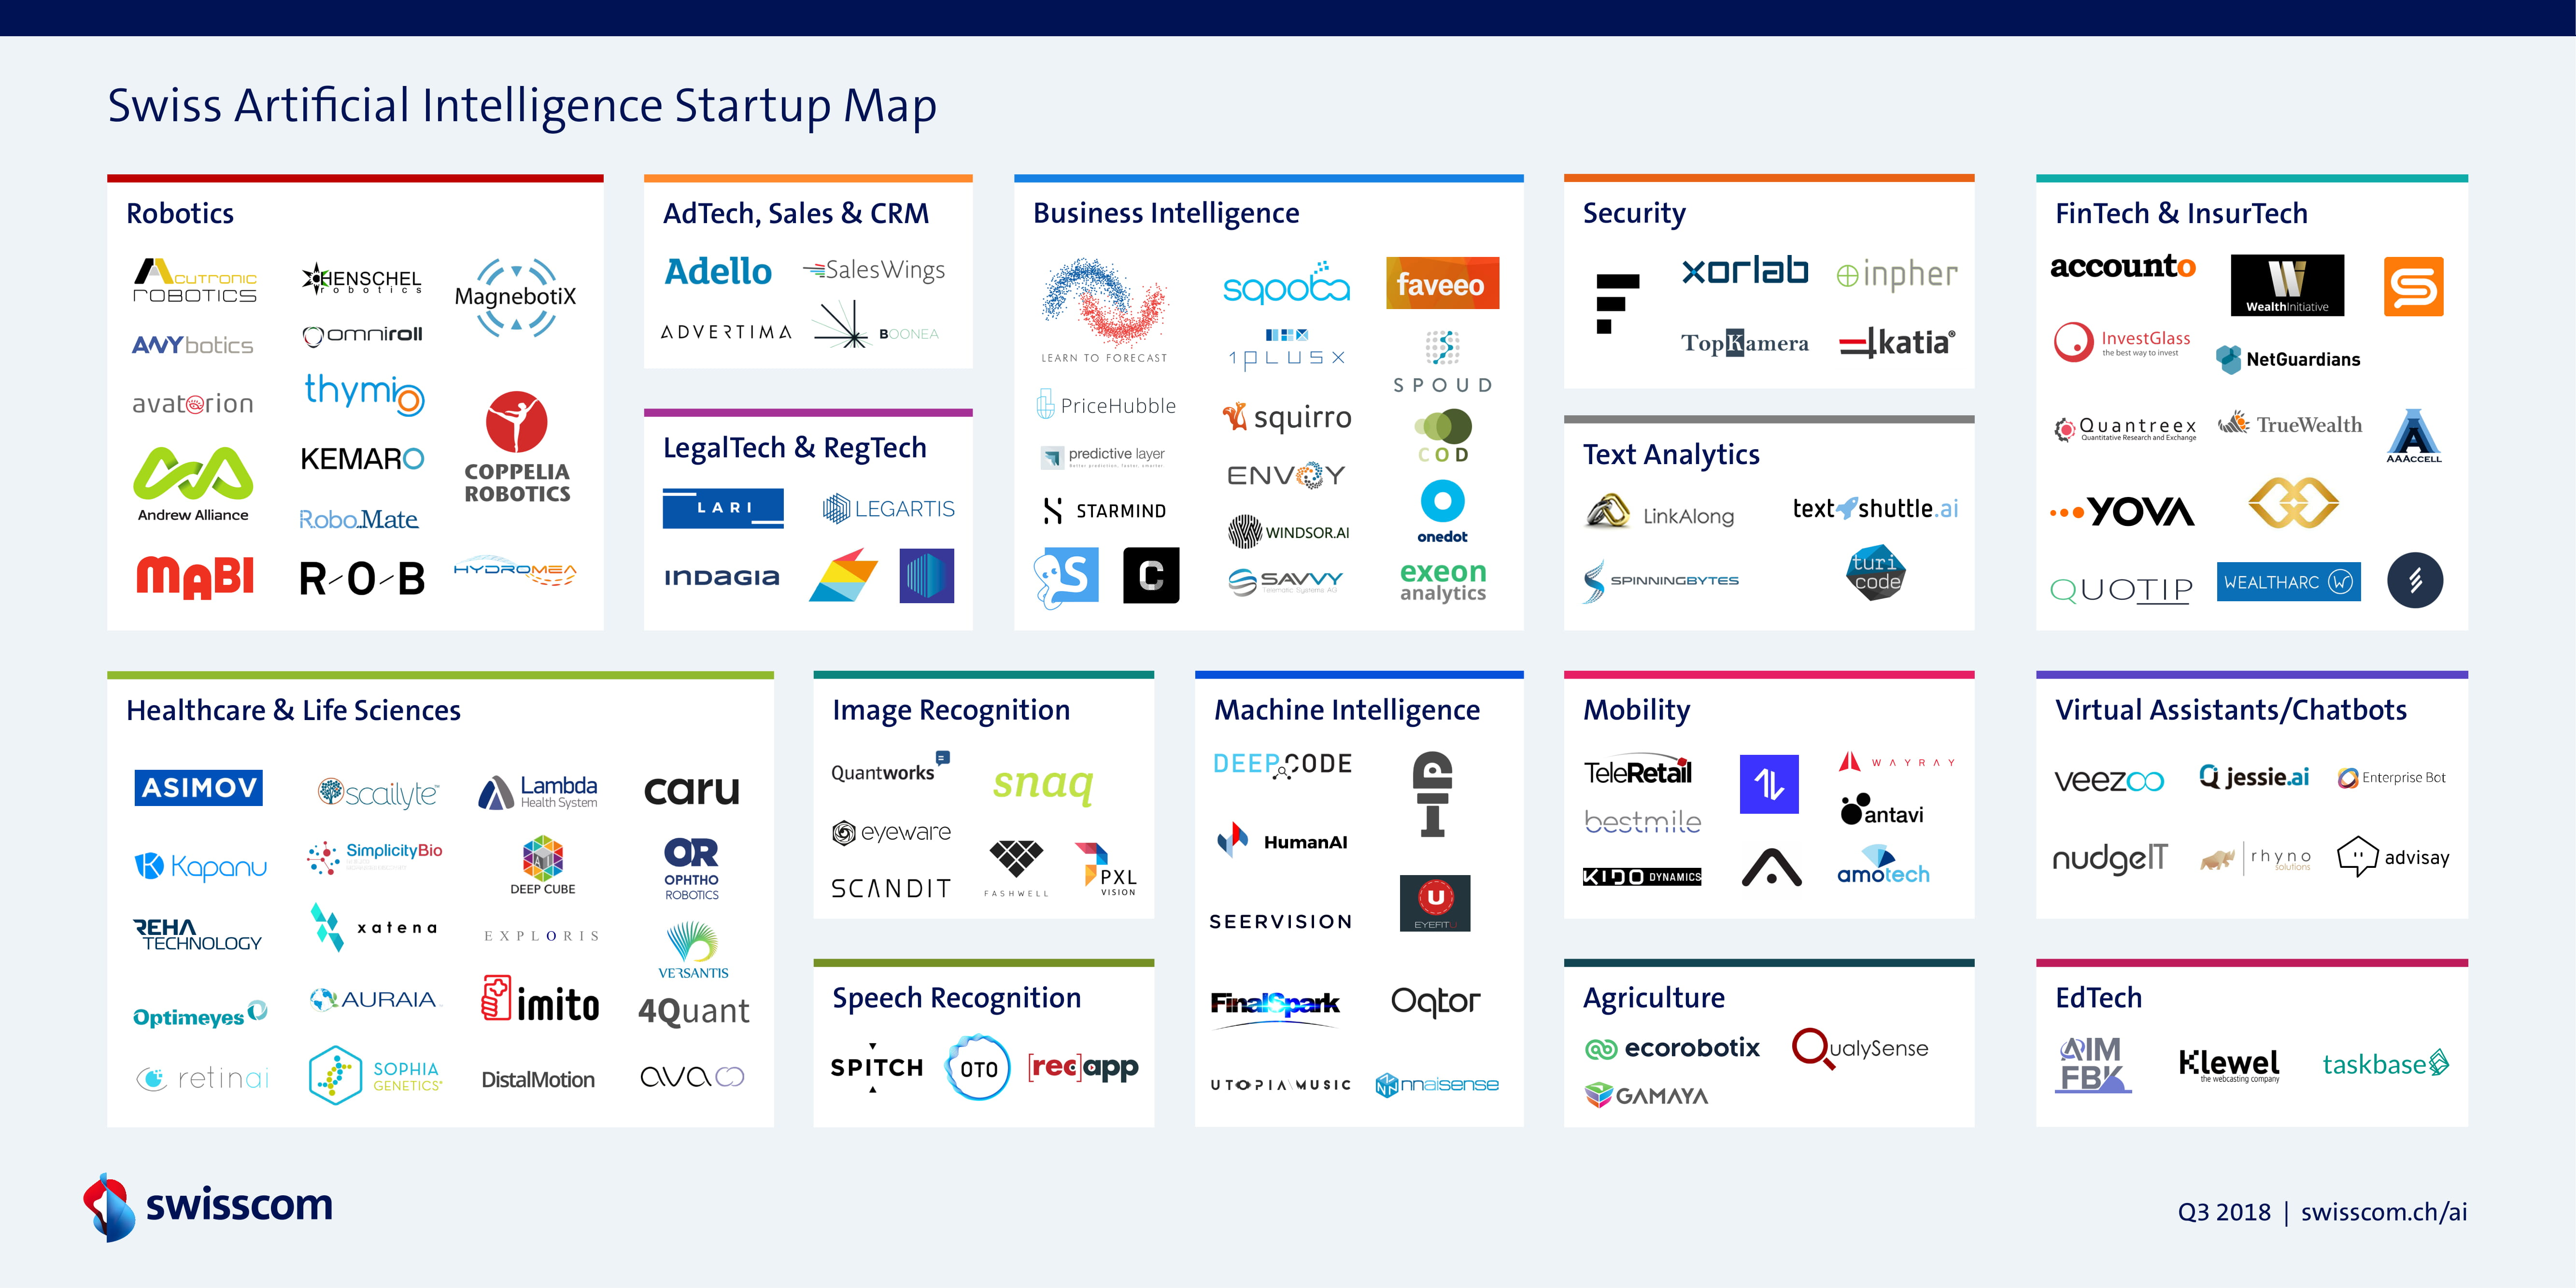 Artificial-Intelligence-Startup-Map-Q3-2018-1